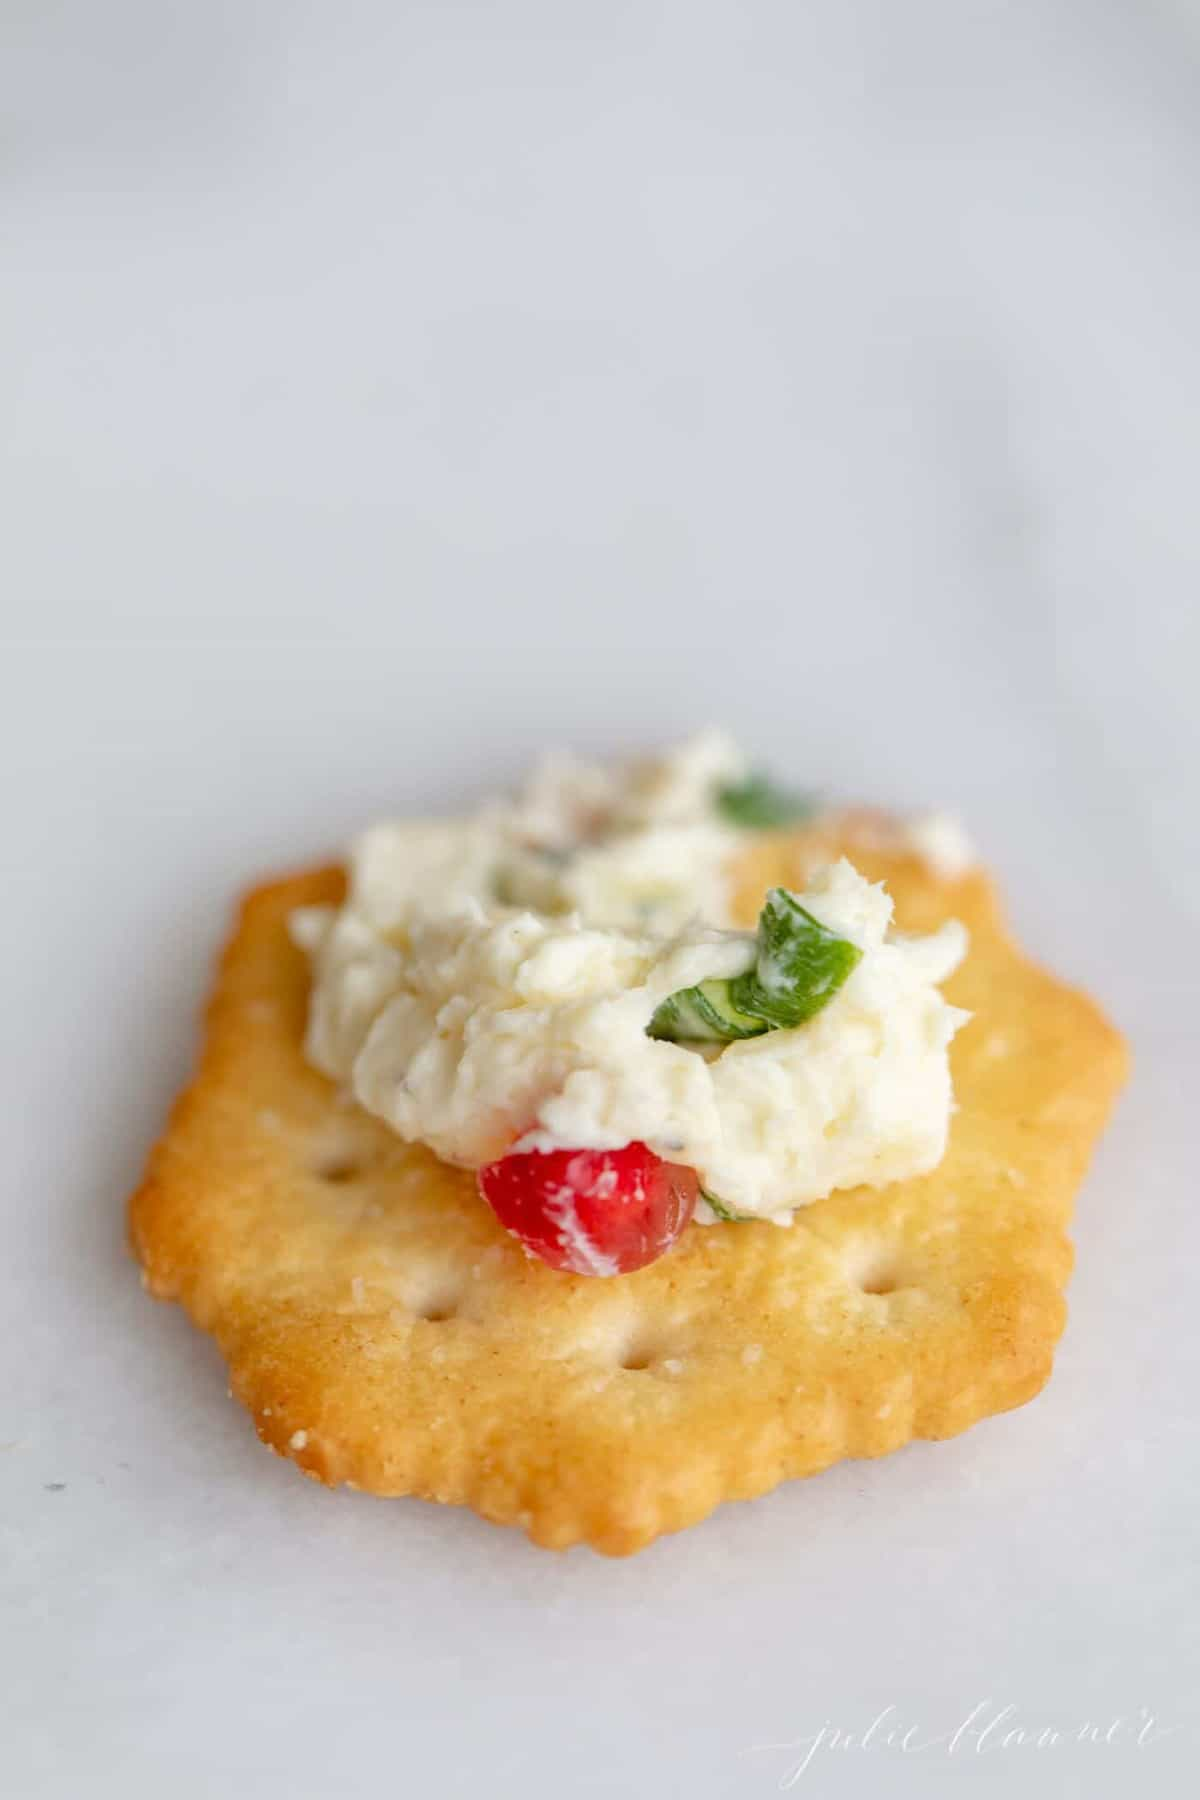 A white surface with a single cracker with a serving of holiday cheese ball on top.